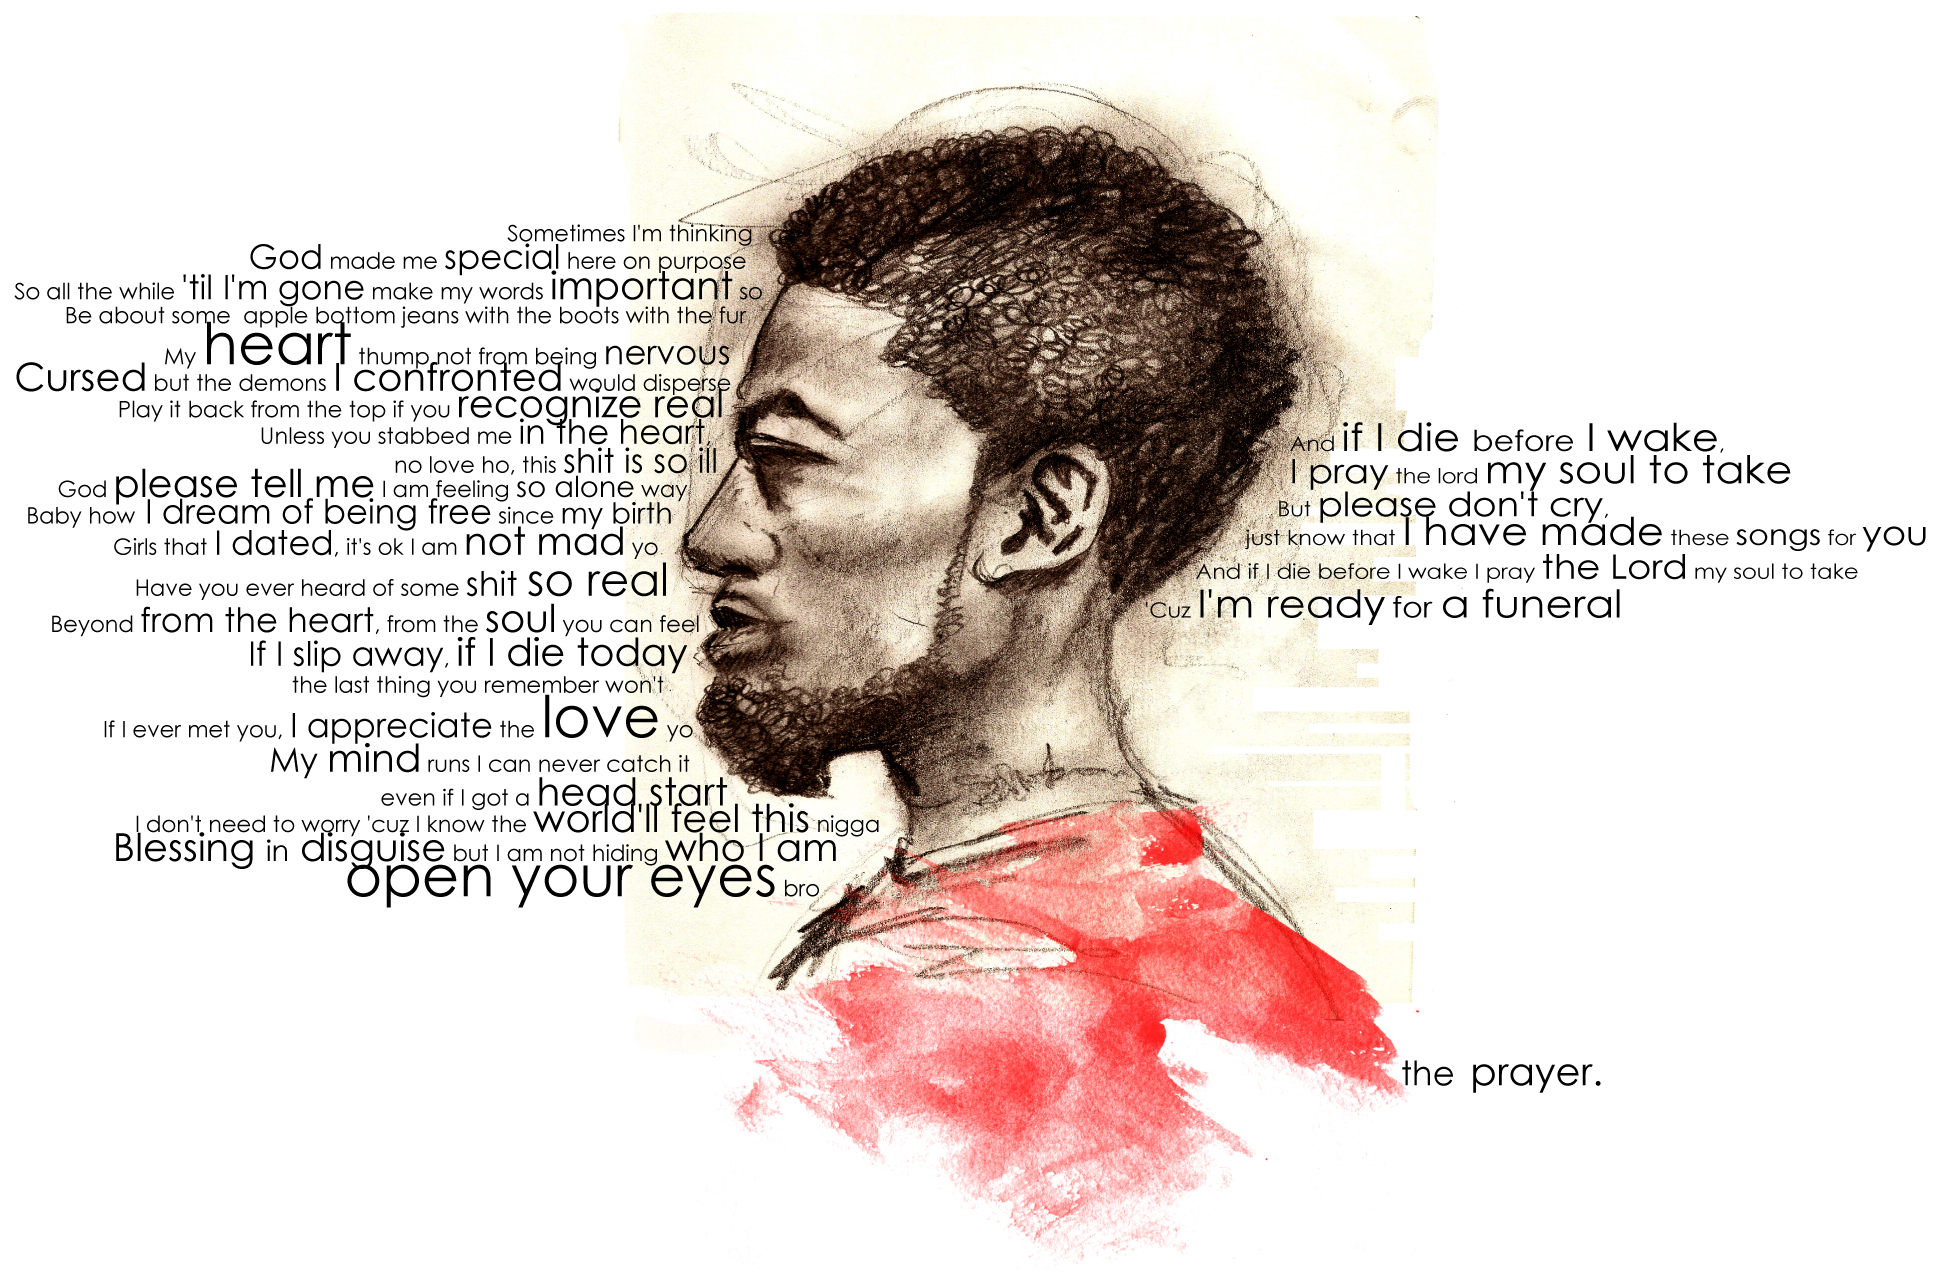 The Prayer Kid Cudi Reddit